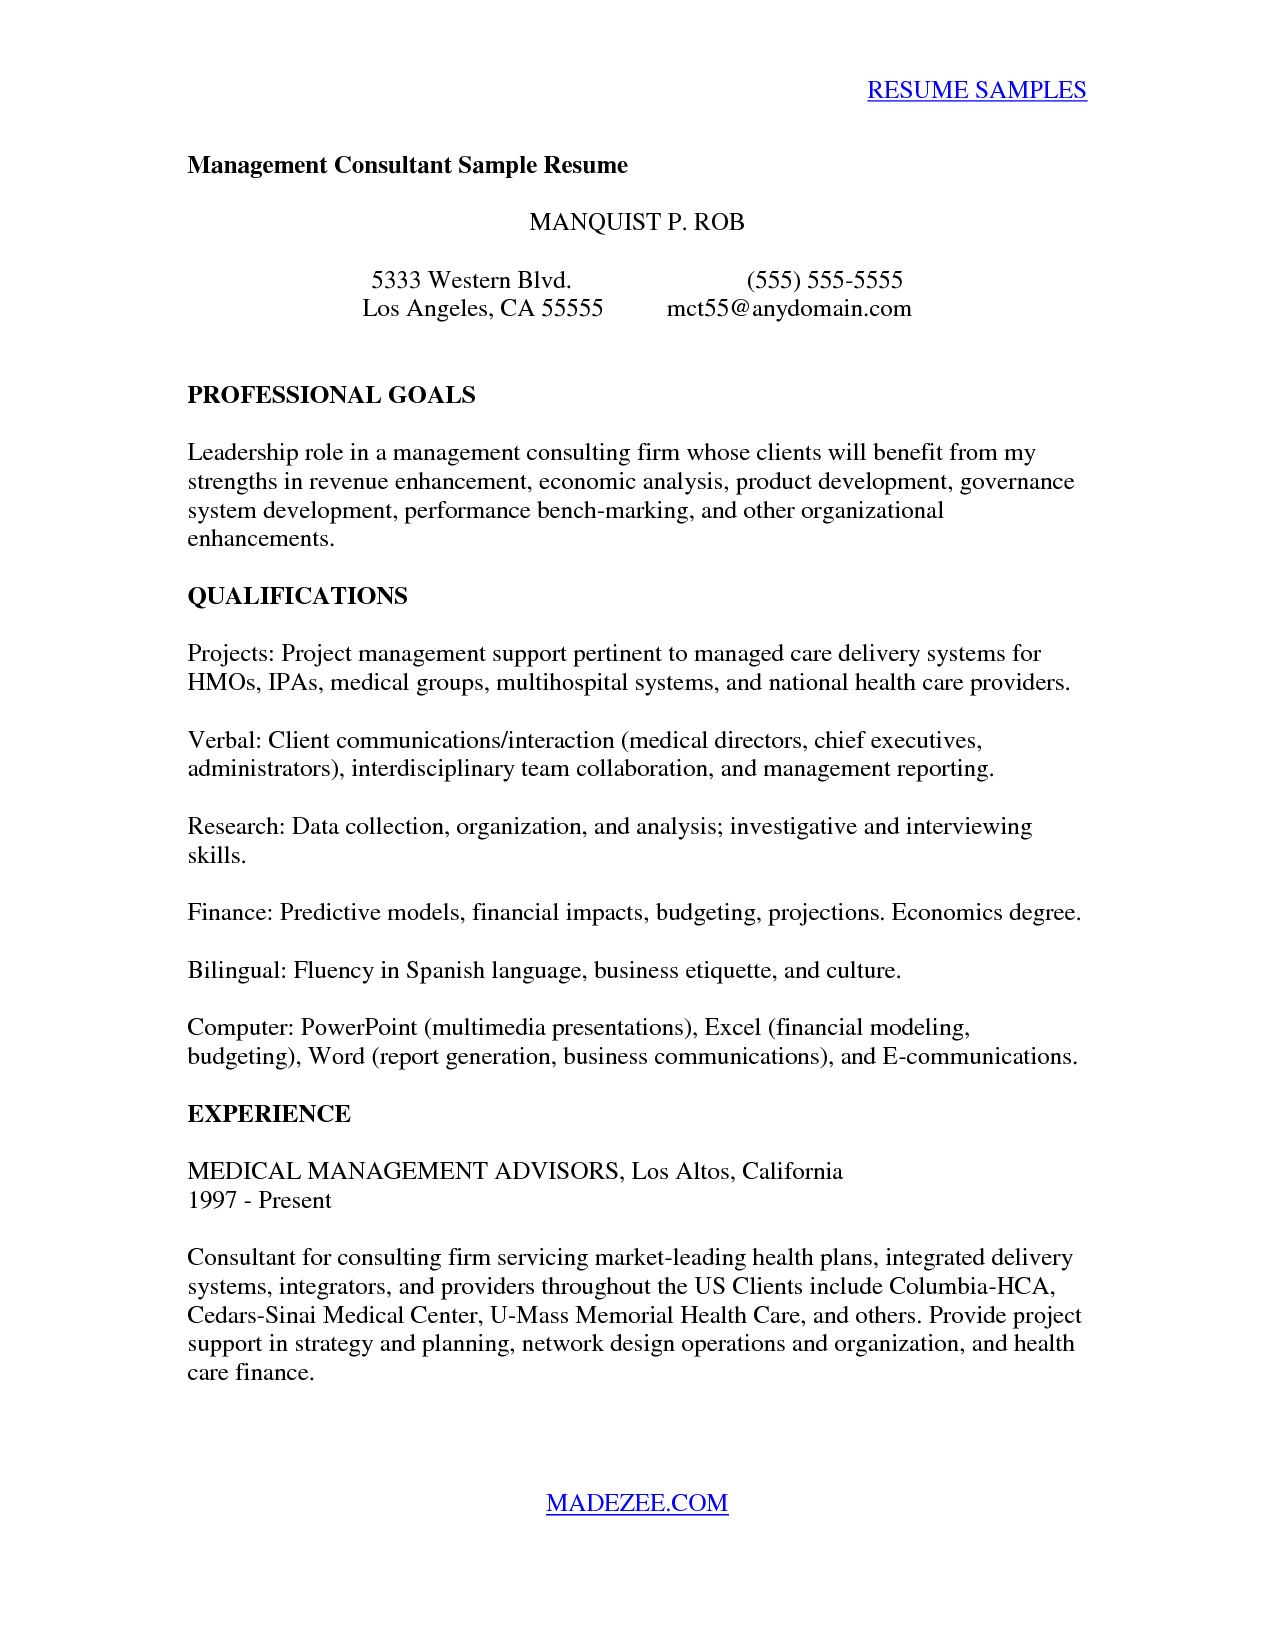 Sample Cover Letter for Internal Position Template Collection ...